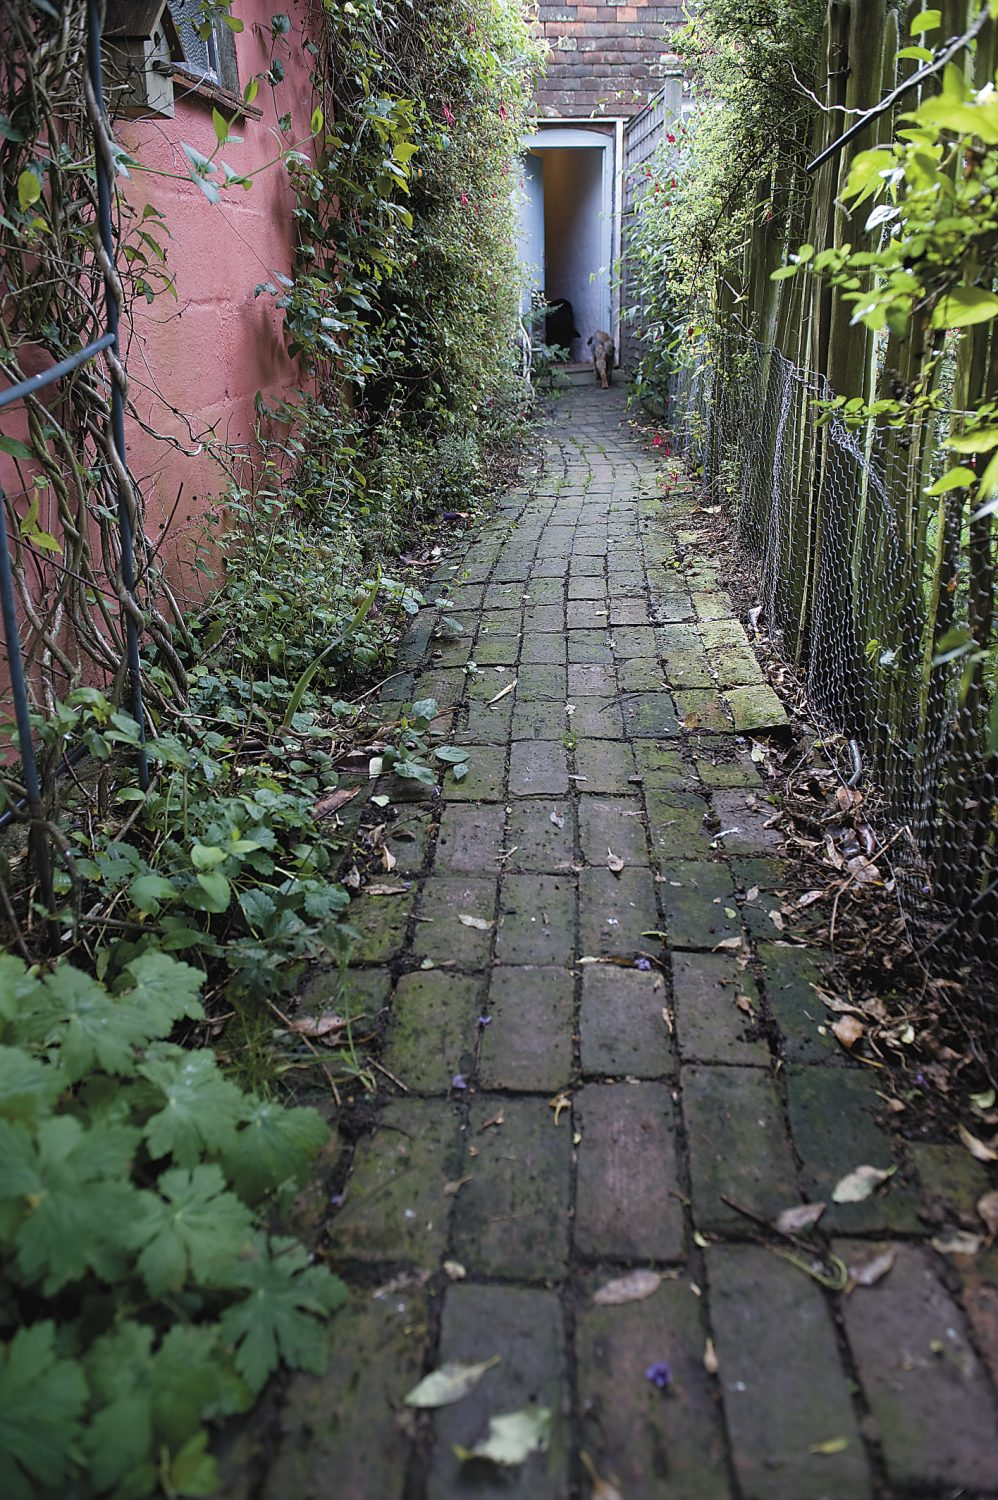 a brick path leads from the house to the garden